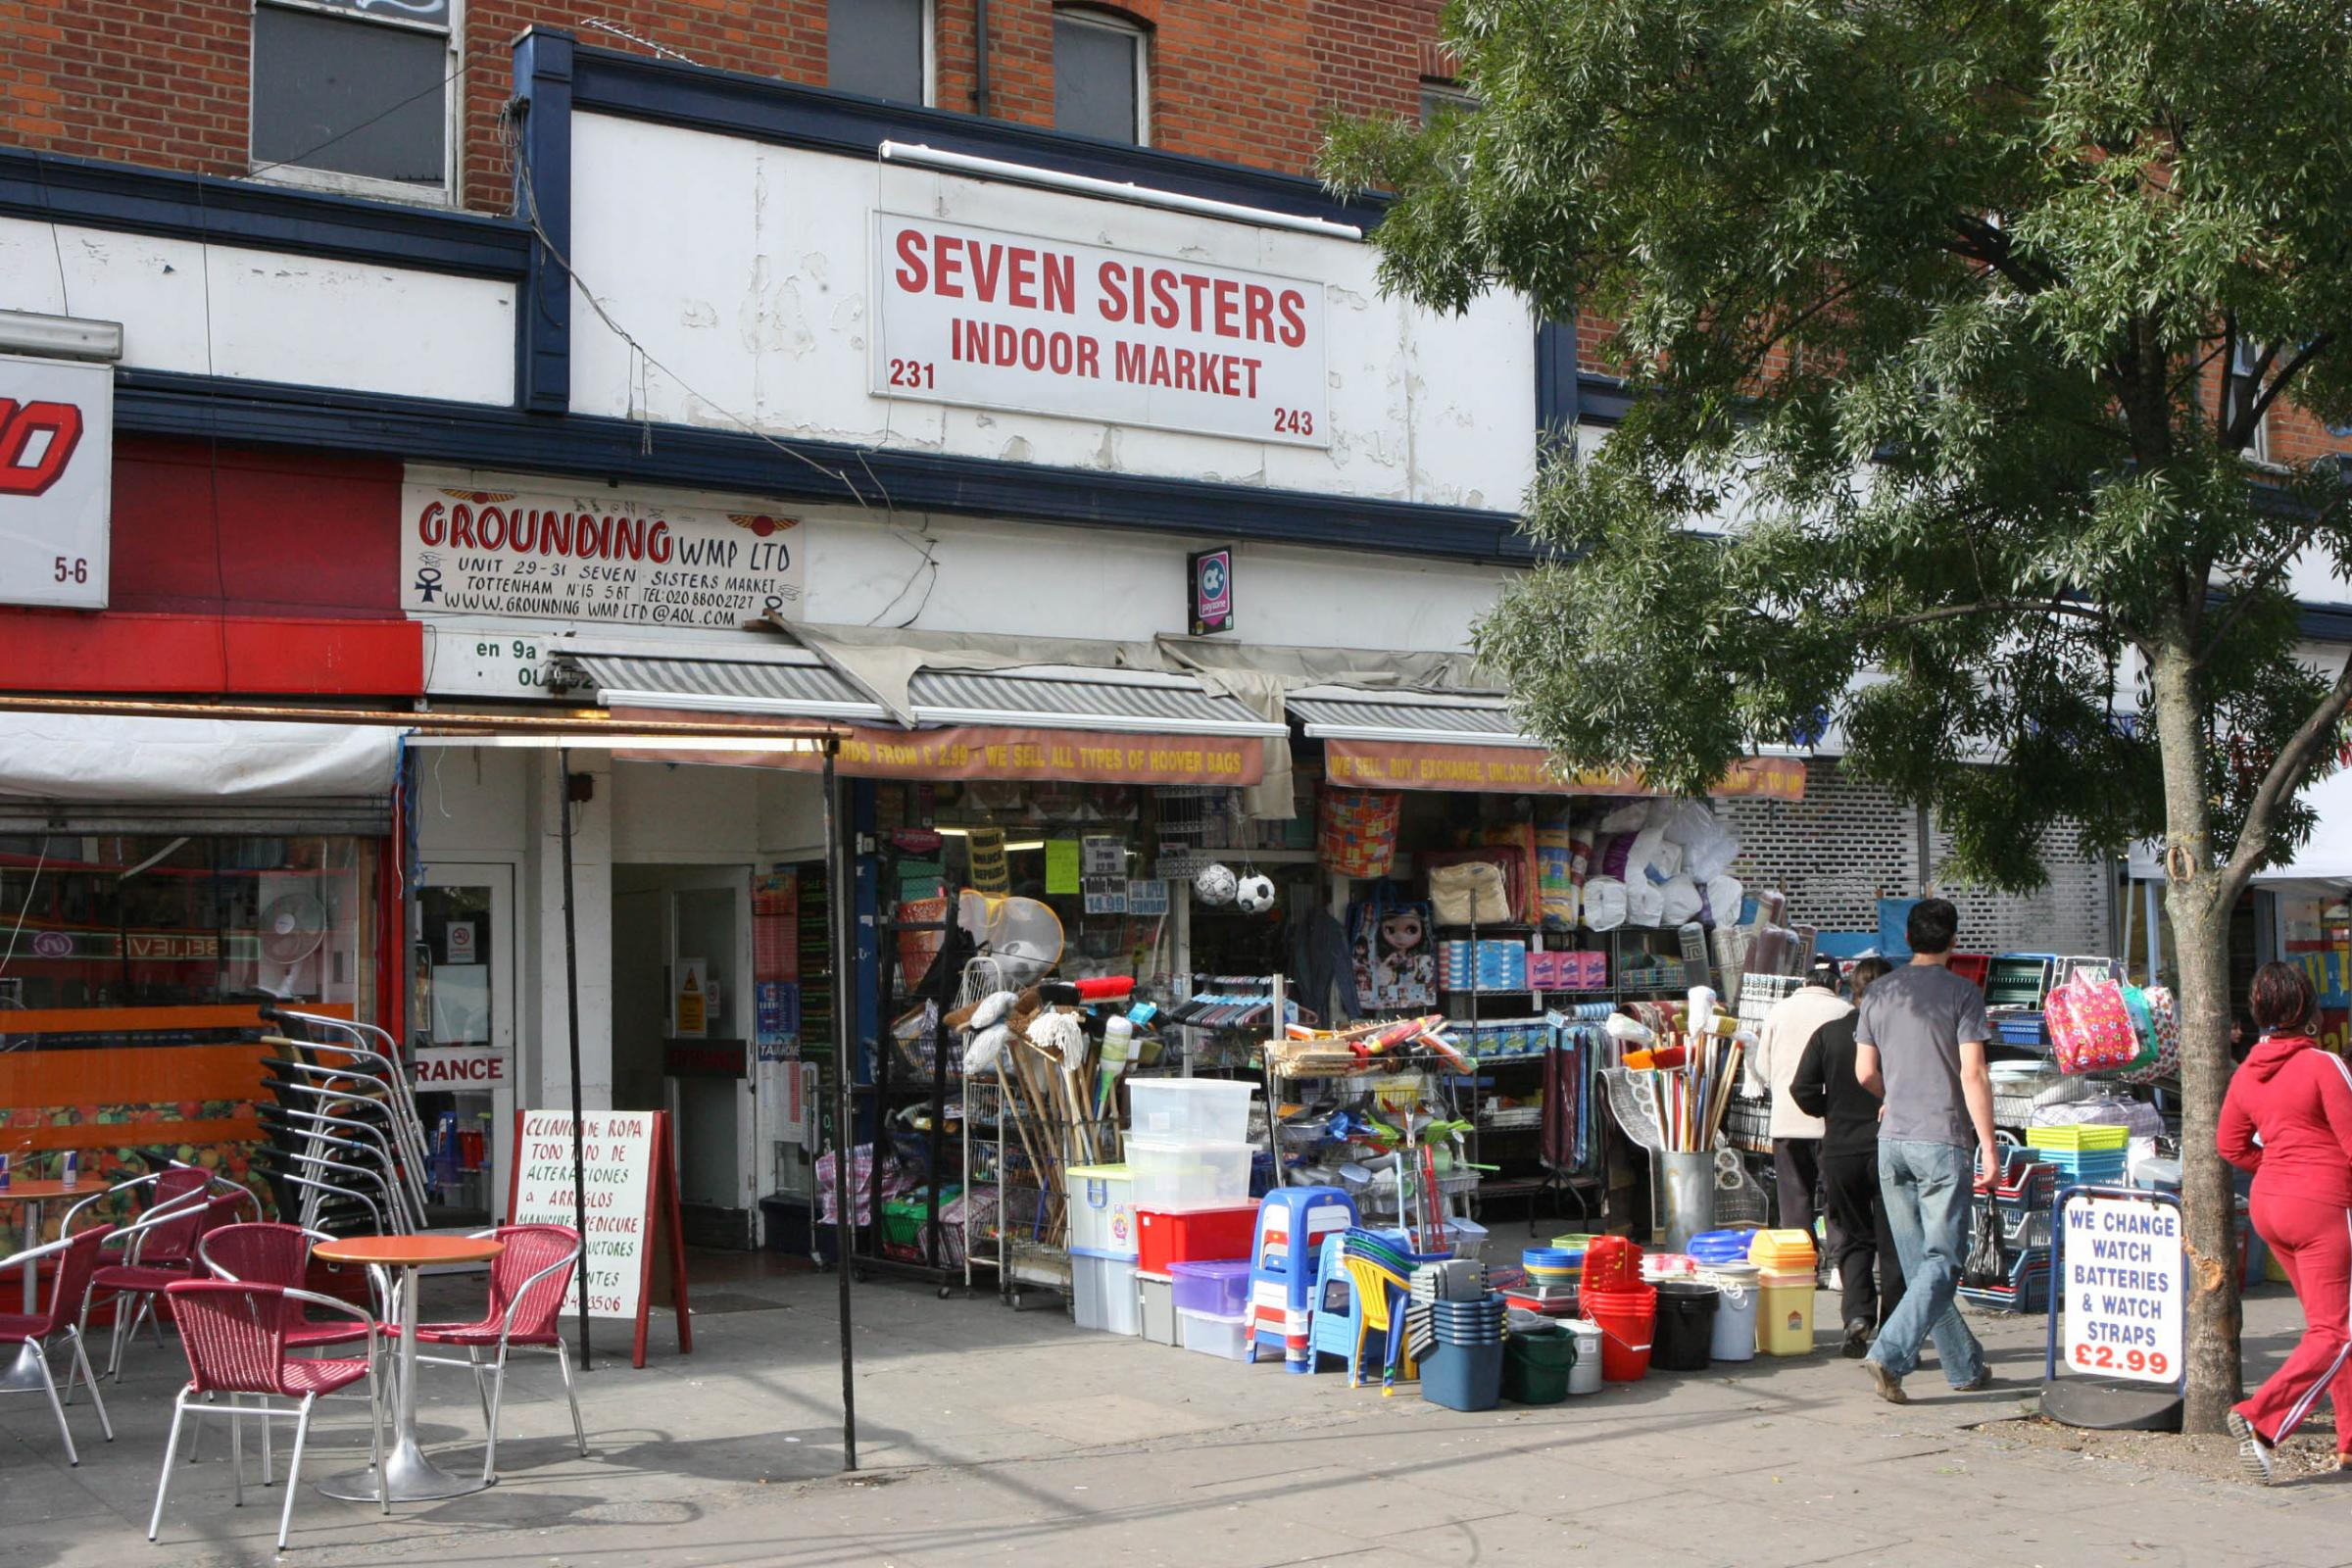 Traders criticise council leader over Latin Market